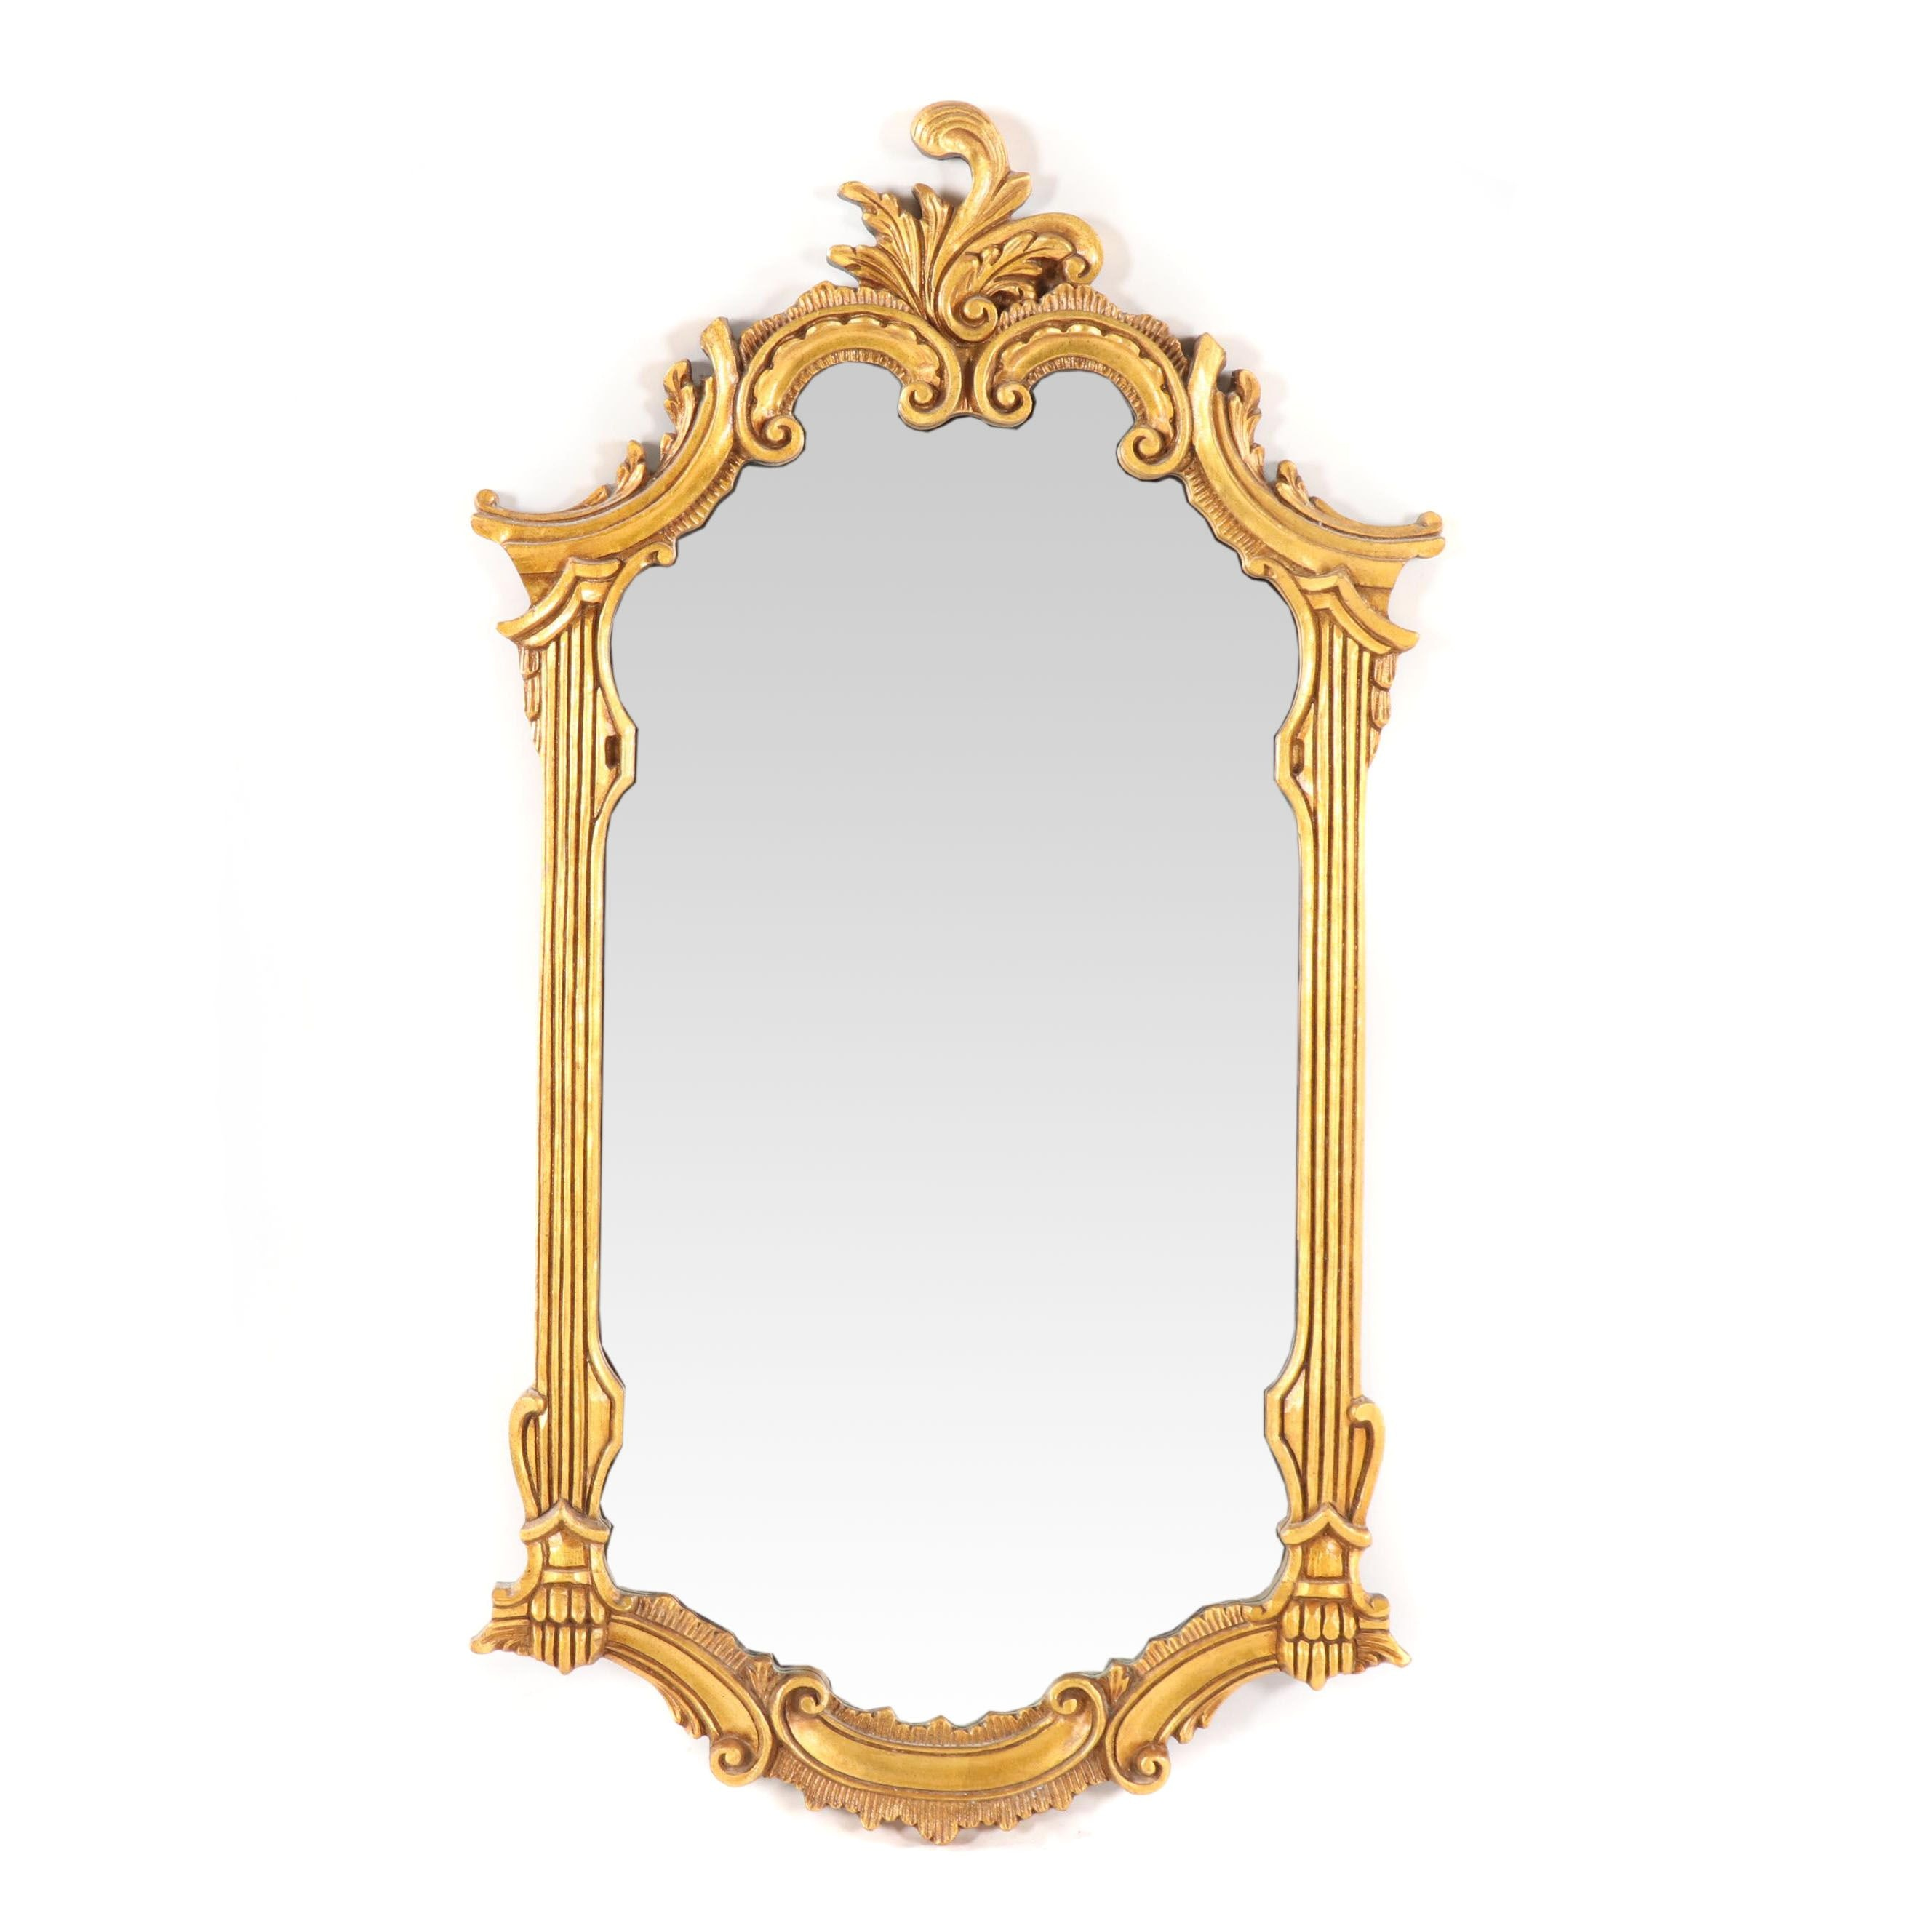 Rococo Style Giltwood Wall Mount Mirror, 21st Century